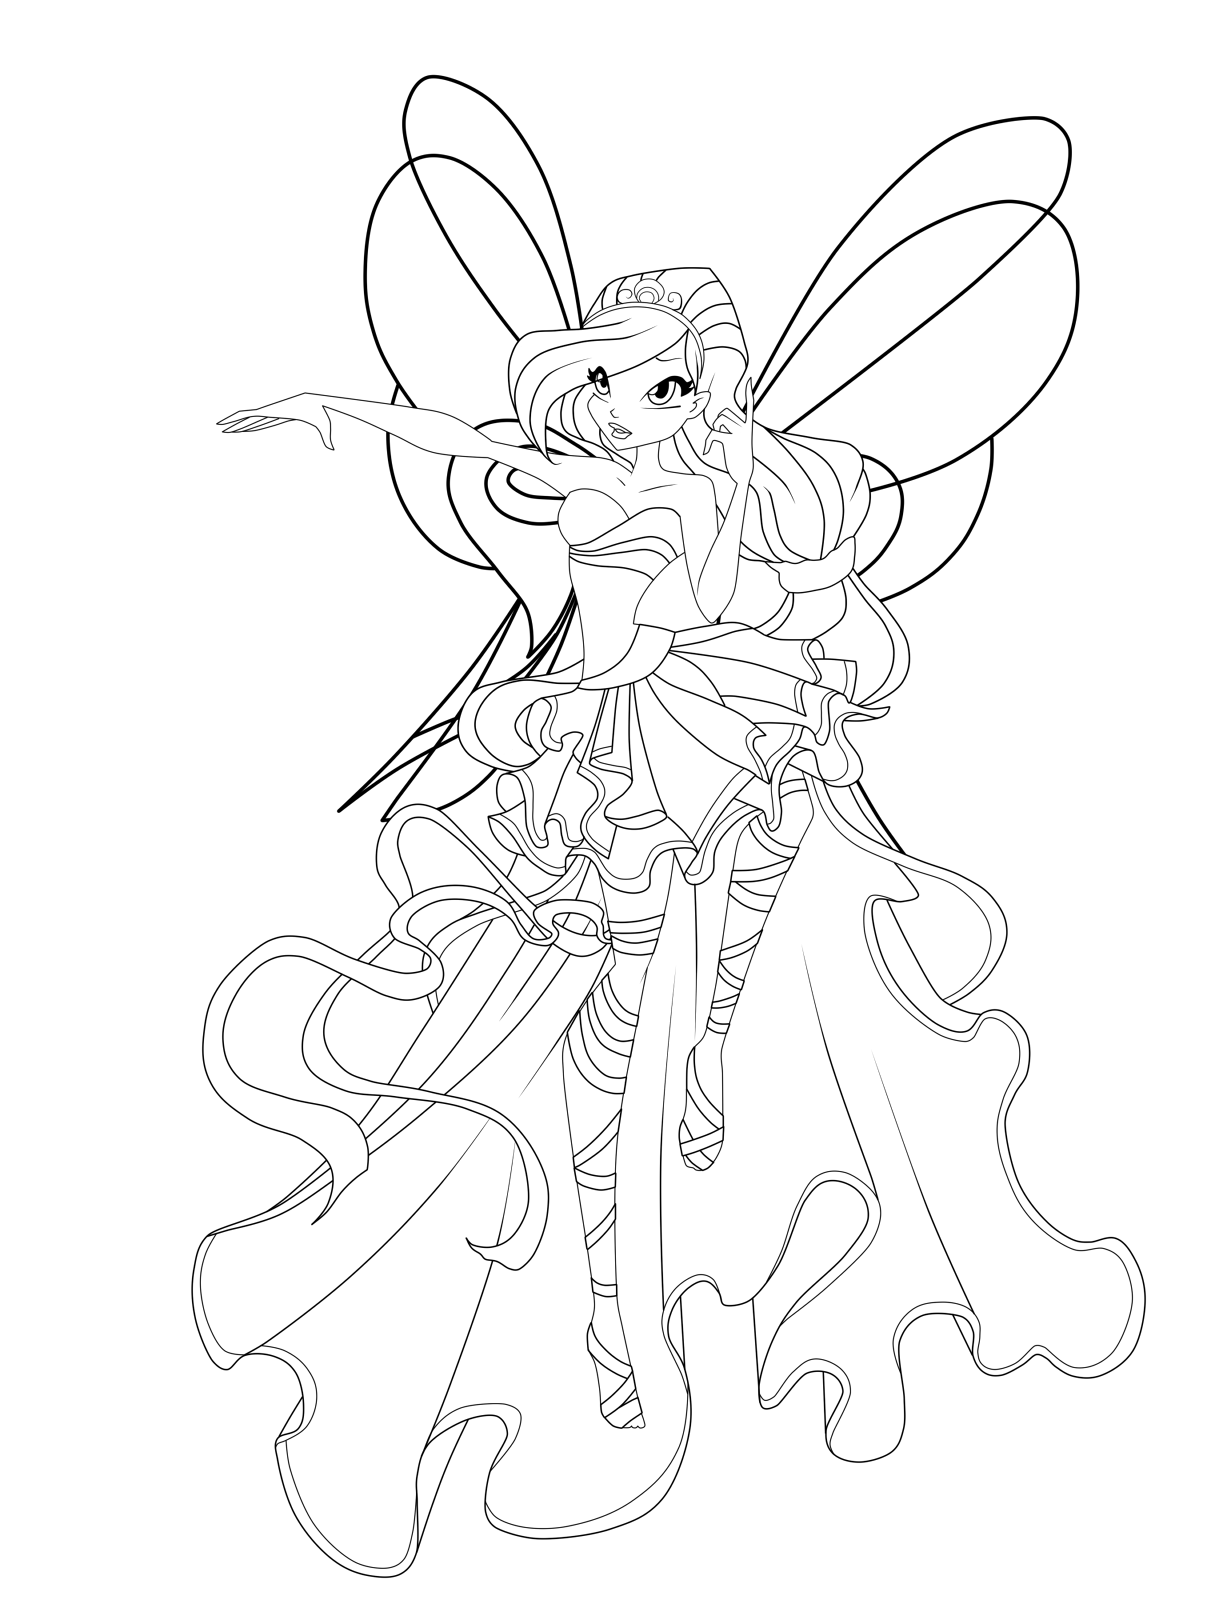 Winx Sirenix Coloring Pages Fairy Coloring Pages Hello Kitty Colouring Pages Cartoon Coloring Pages